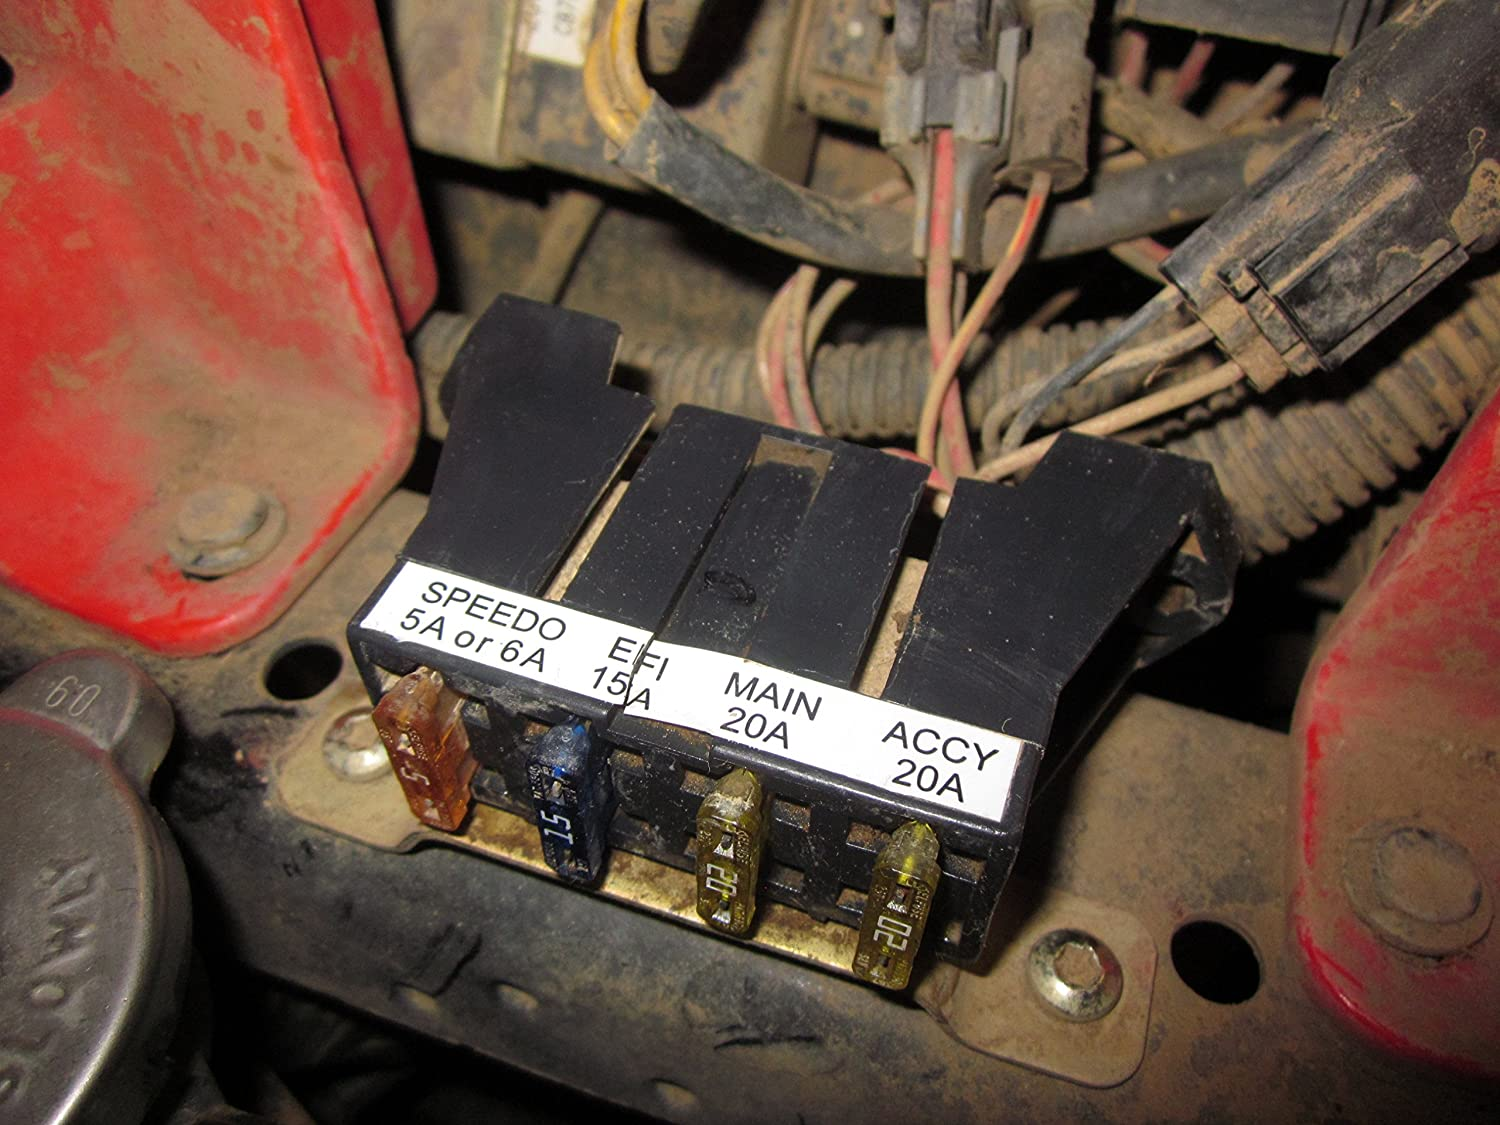 2006 polaris ranger 500 fuse box wiring diagram update yamaha rhino battery location polaris sportsman 500 fuse box schema wiring diagram yamaha rhino fuse box 2006 polaris ranger 500 fuse box